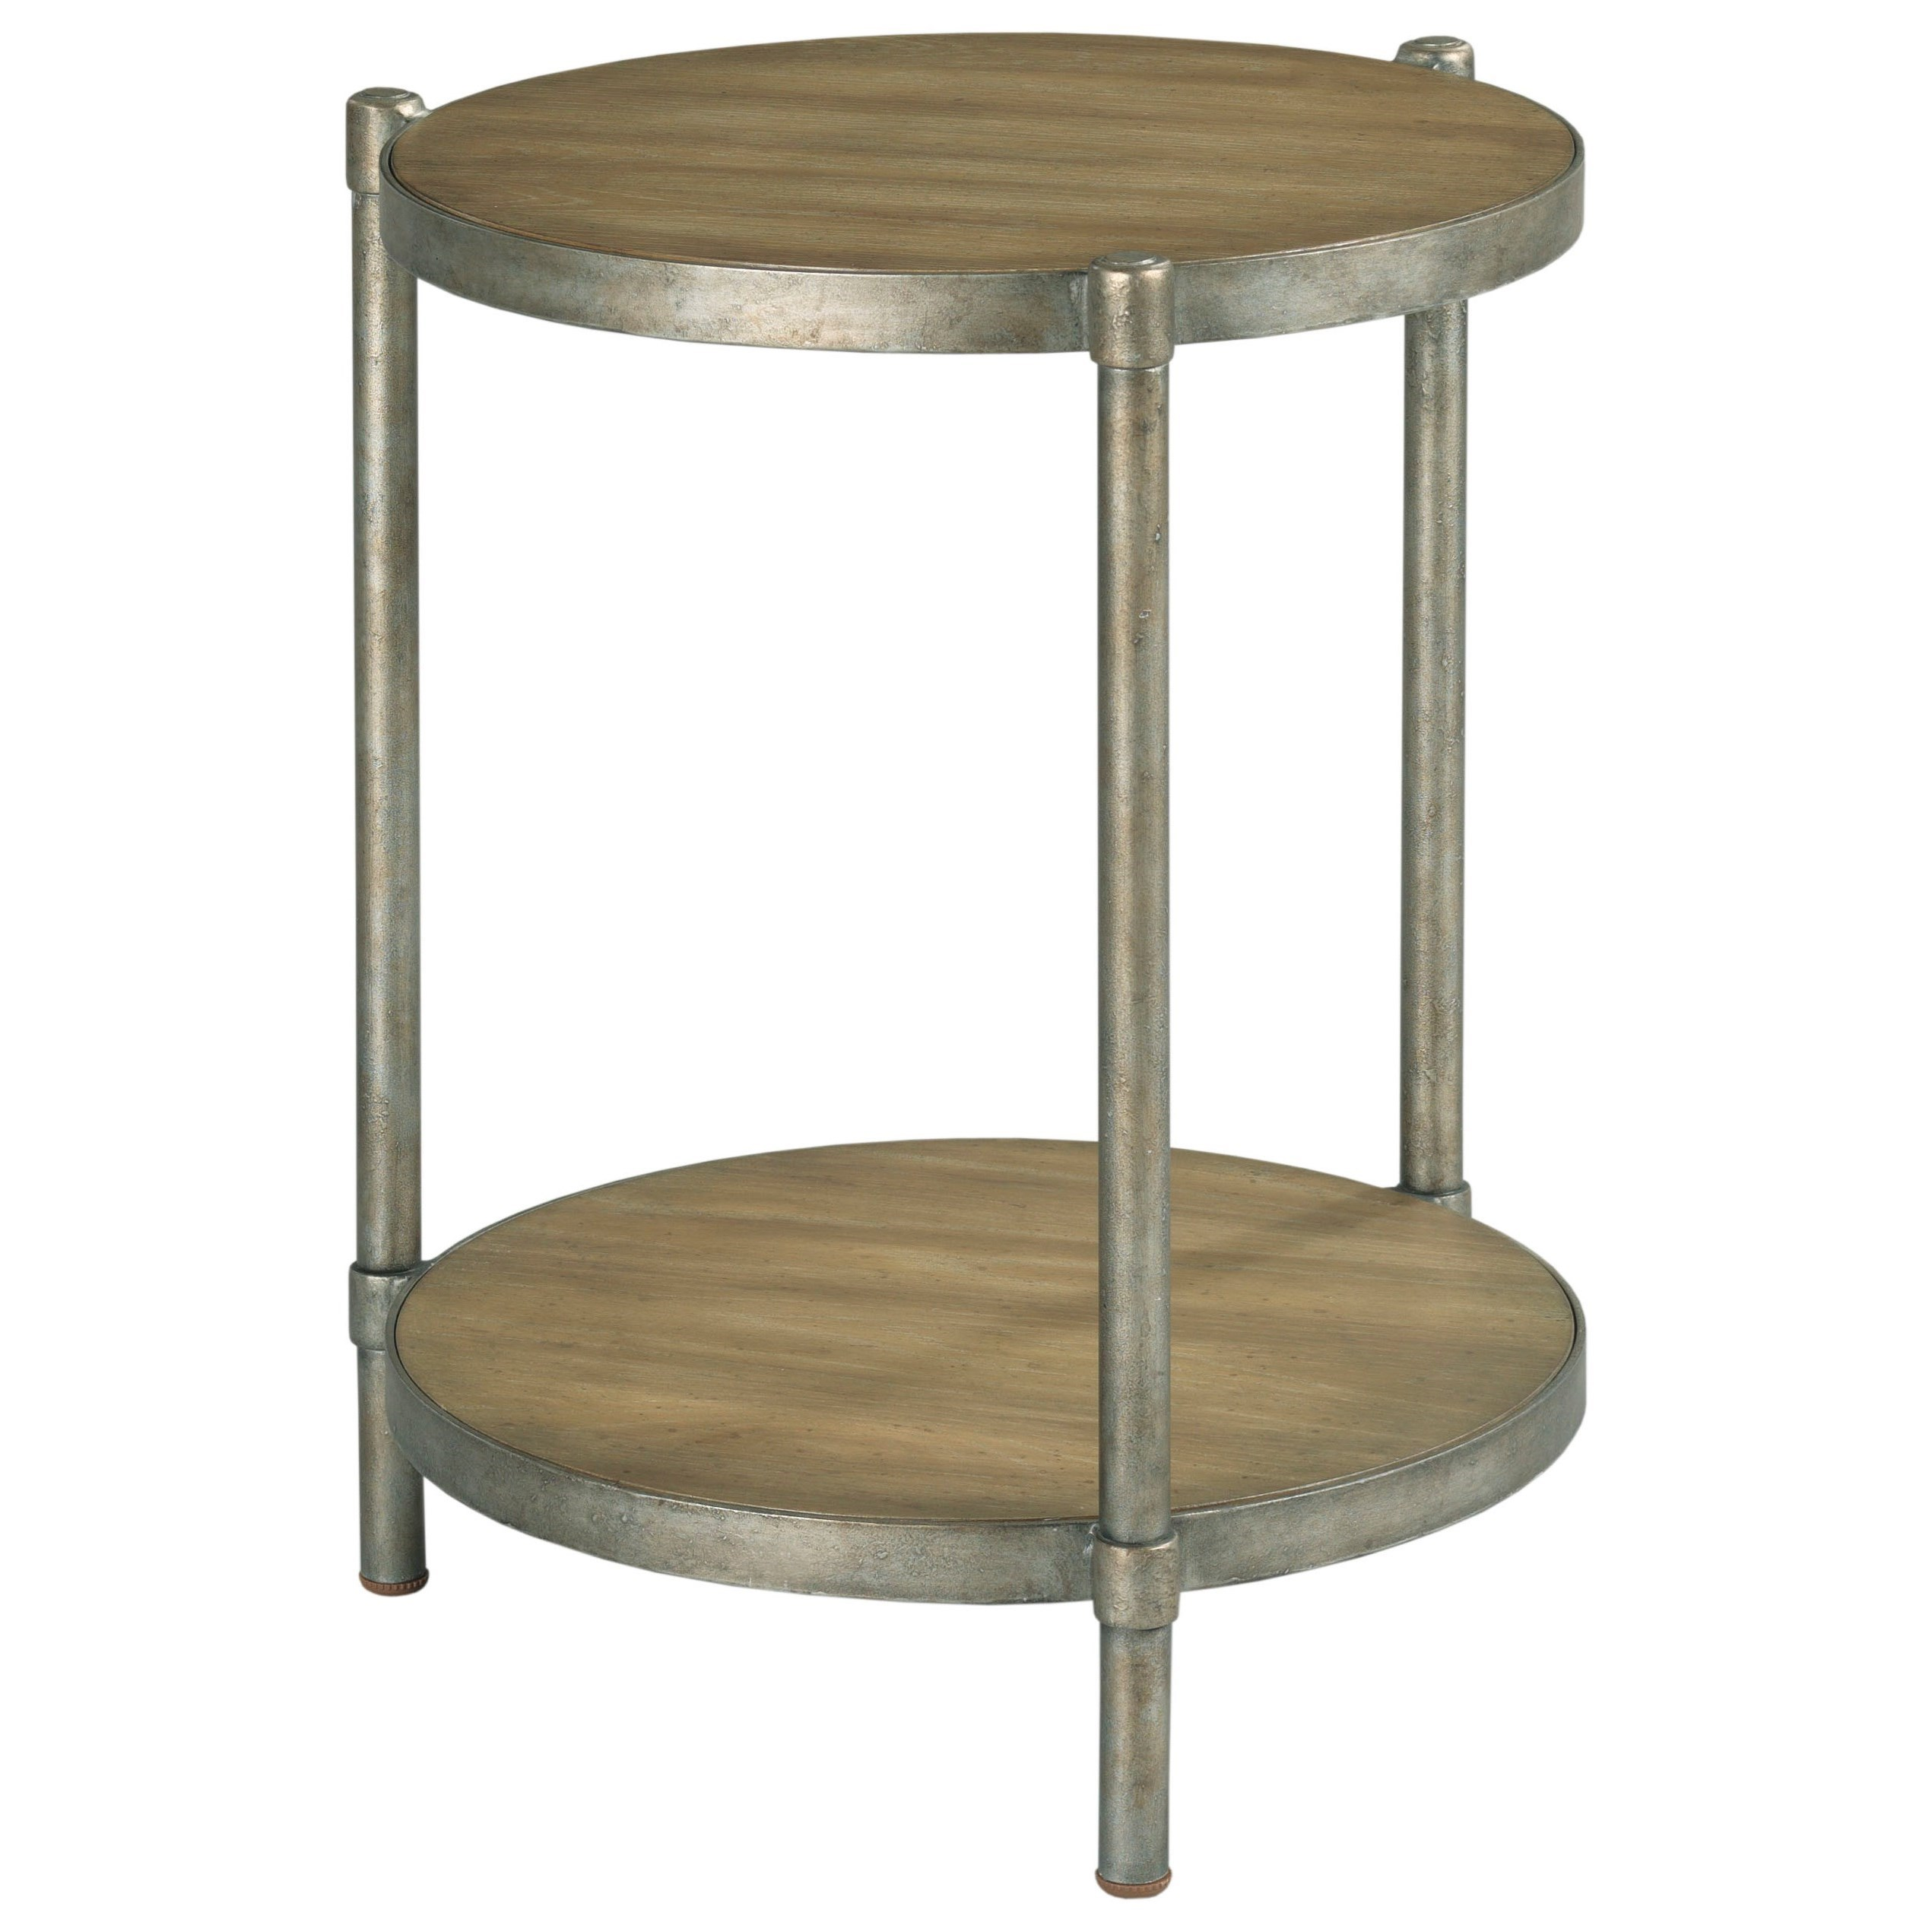 Astor Round Accent Table by Table Trends at Sprintz Furniture